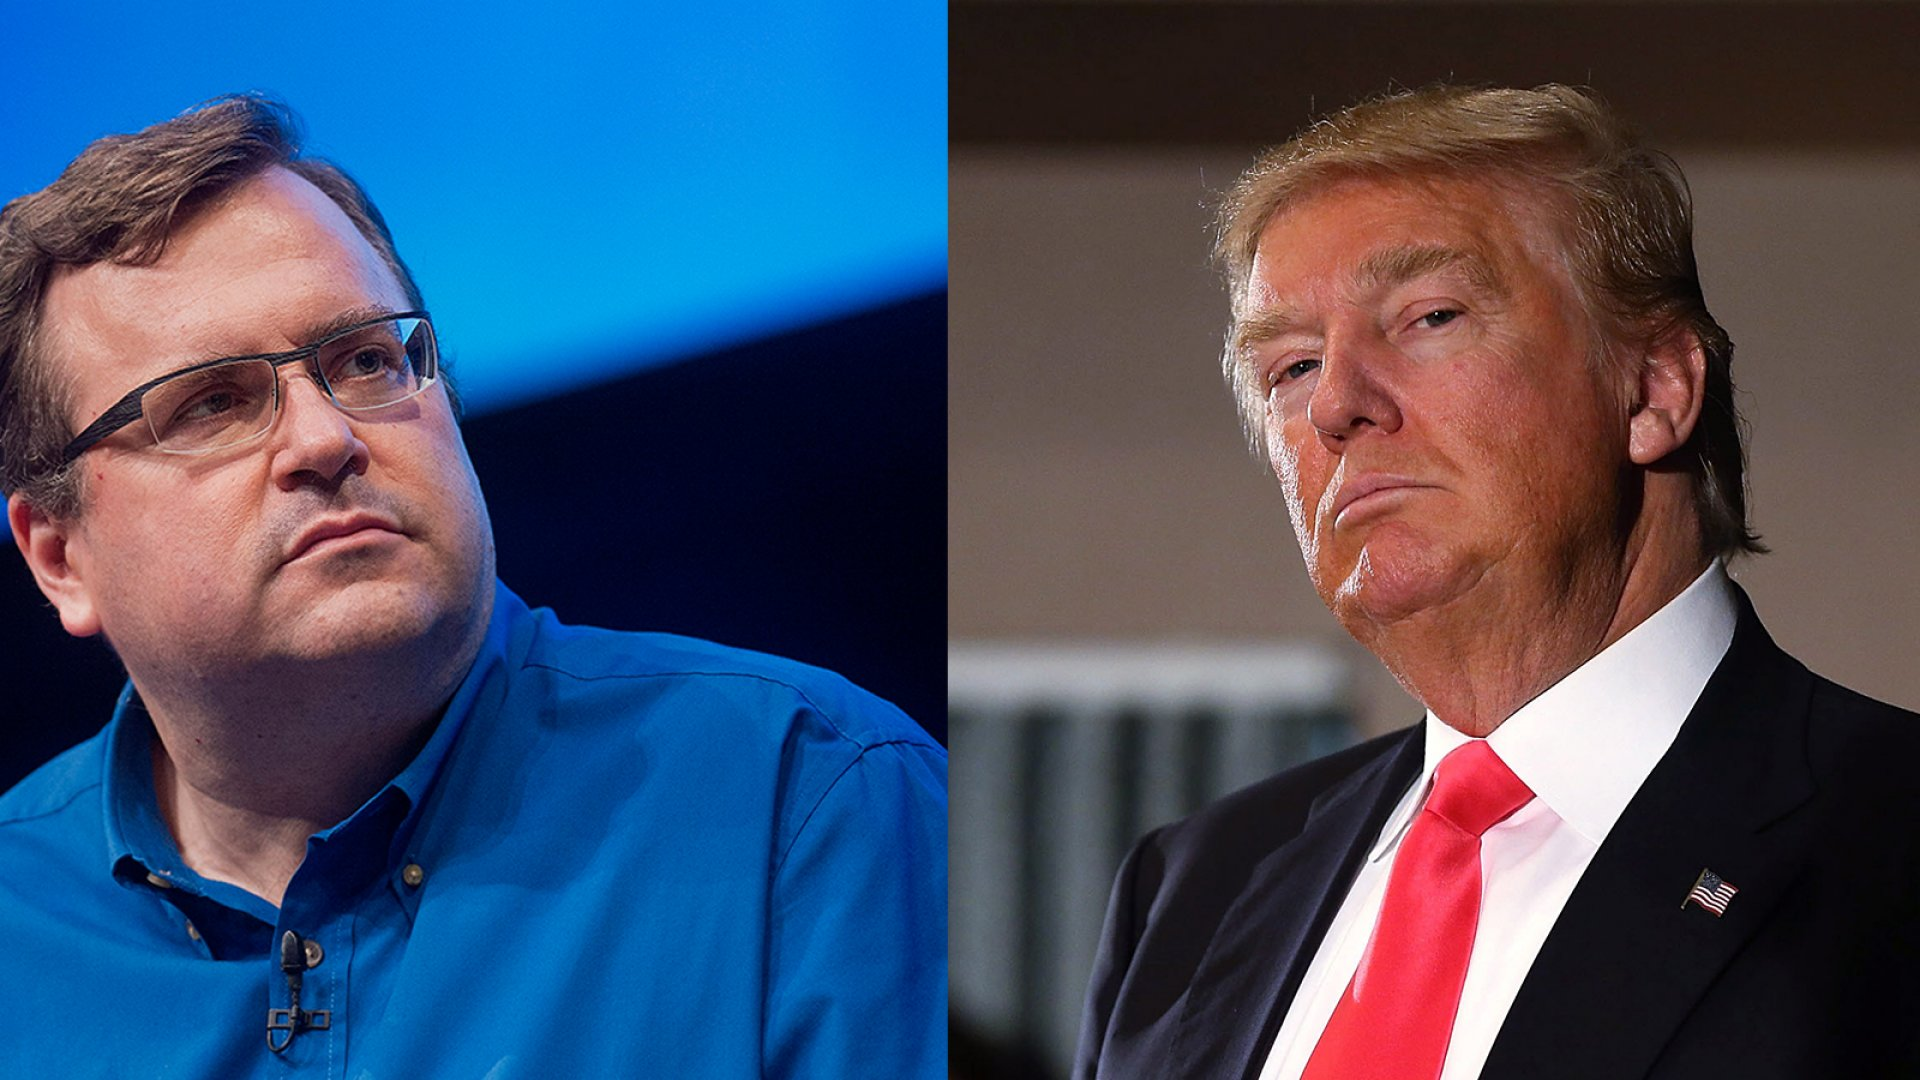 Why LinkedIn's Co-Founder Is Taking on Donald Trump